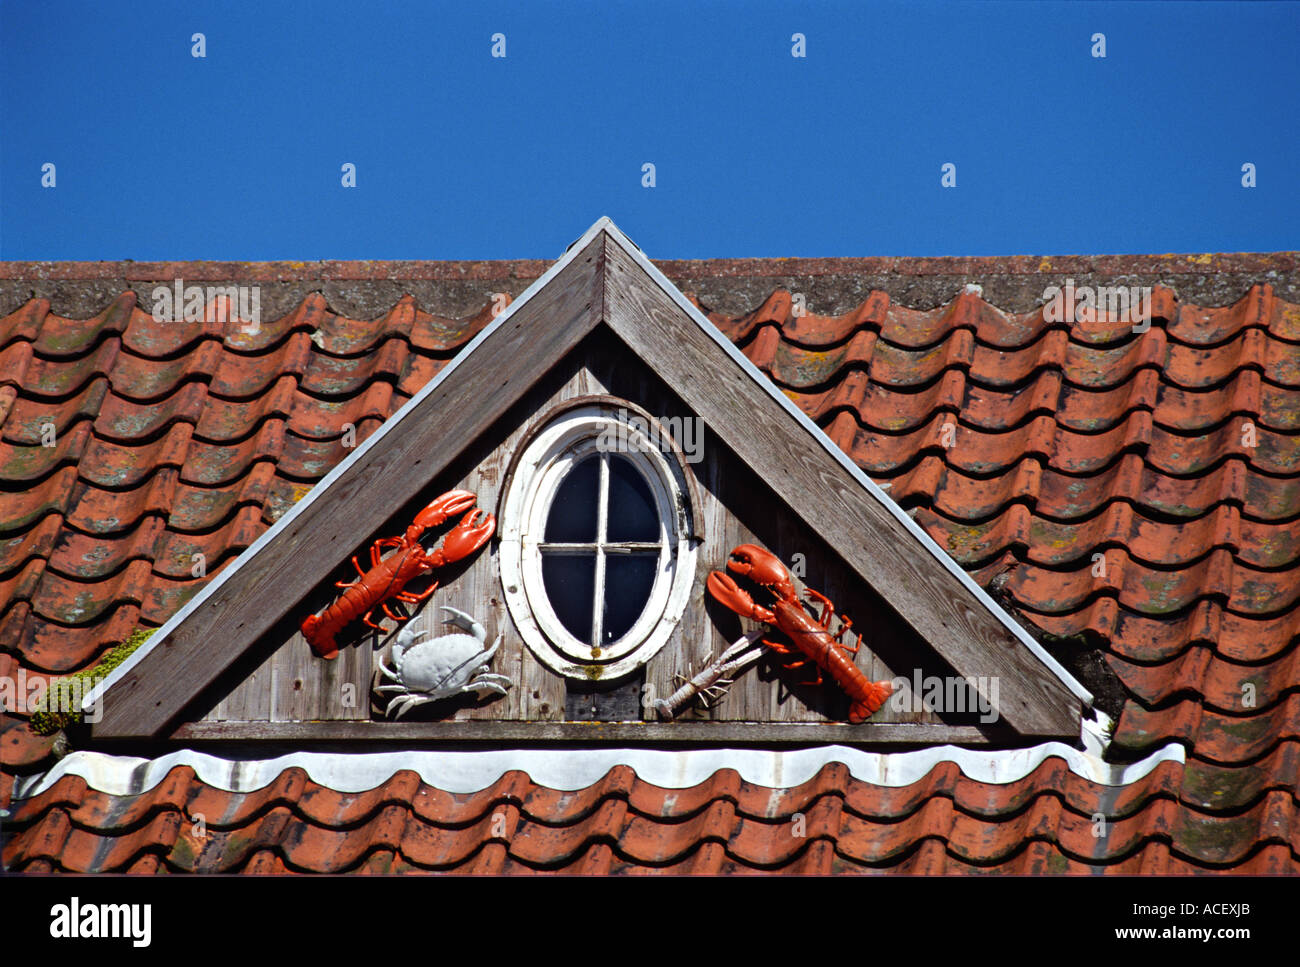 SCOTLAND Crail Lobster and crabs hung outside oval dormer window triangular dormer on red tiled roof architectural detail - Stock Image